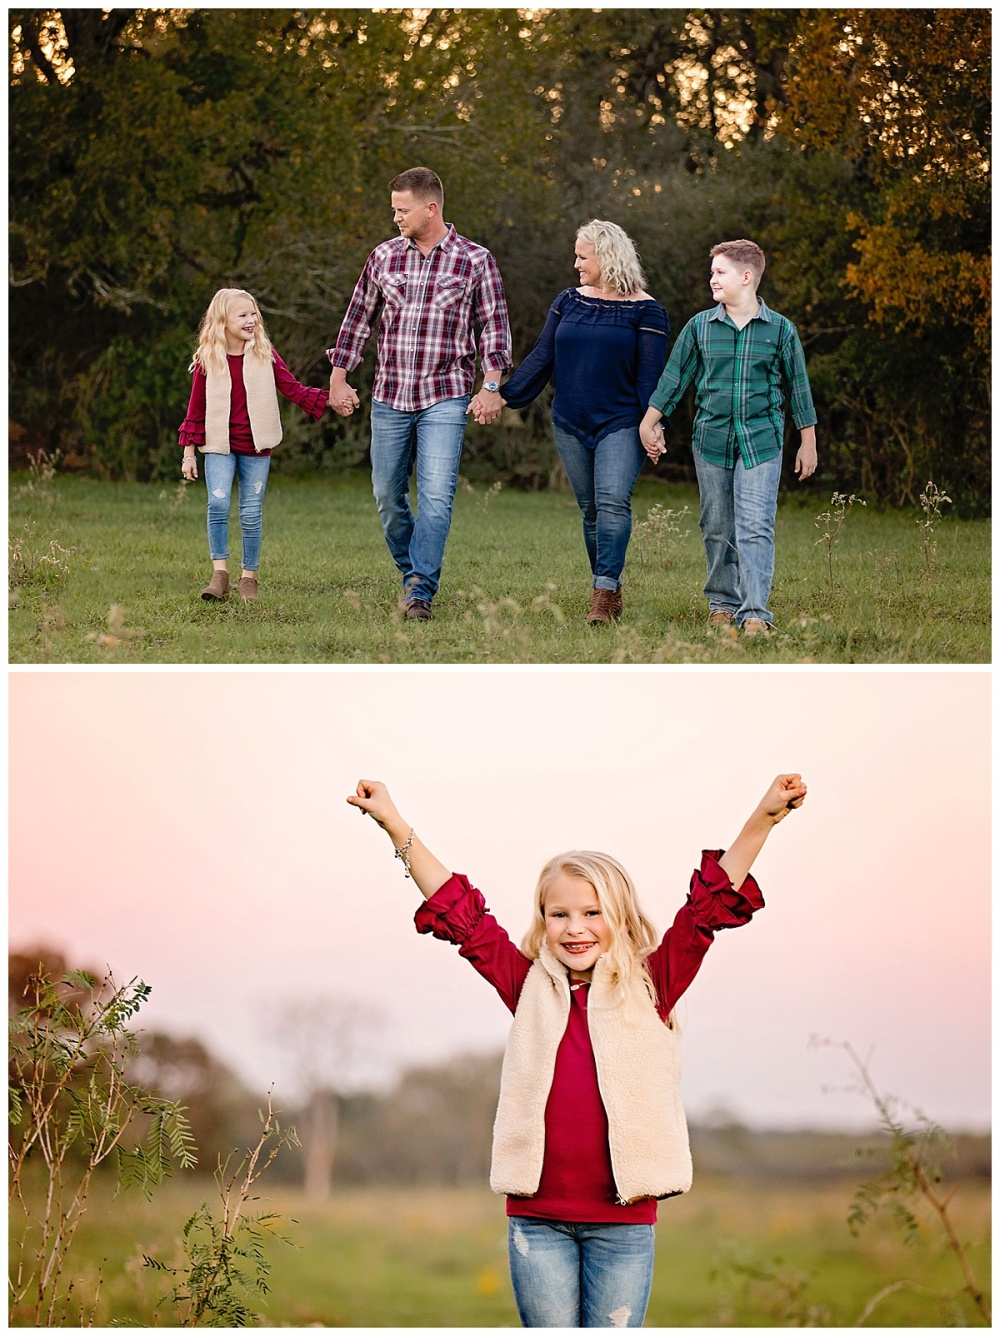 Family-Photographer-LaVernia-Texas-Fall-Sunset-Carly-Barton-Photography_0009.jpg